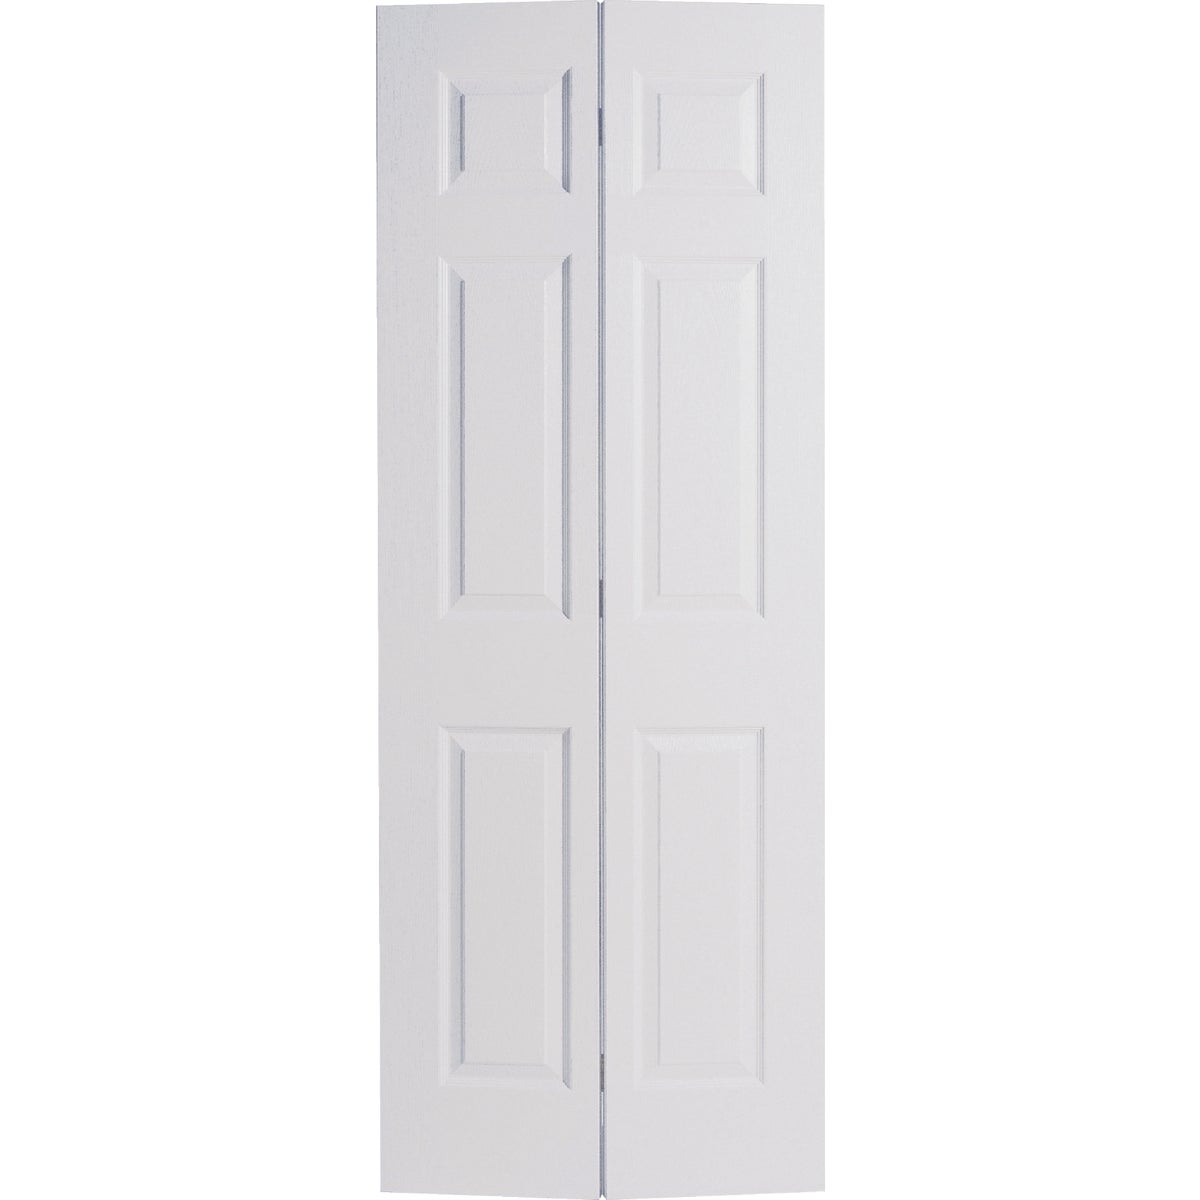 2/0 1-3/8 6PN TX BF DOOR -  by Masonite